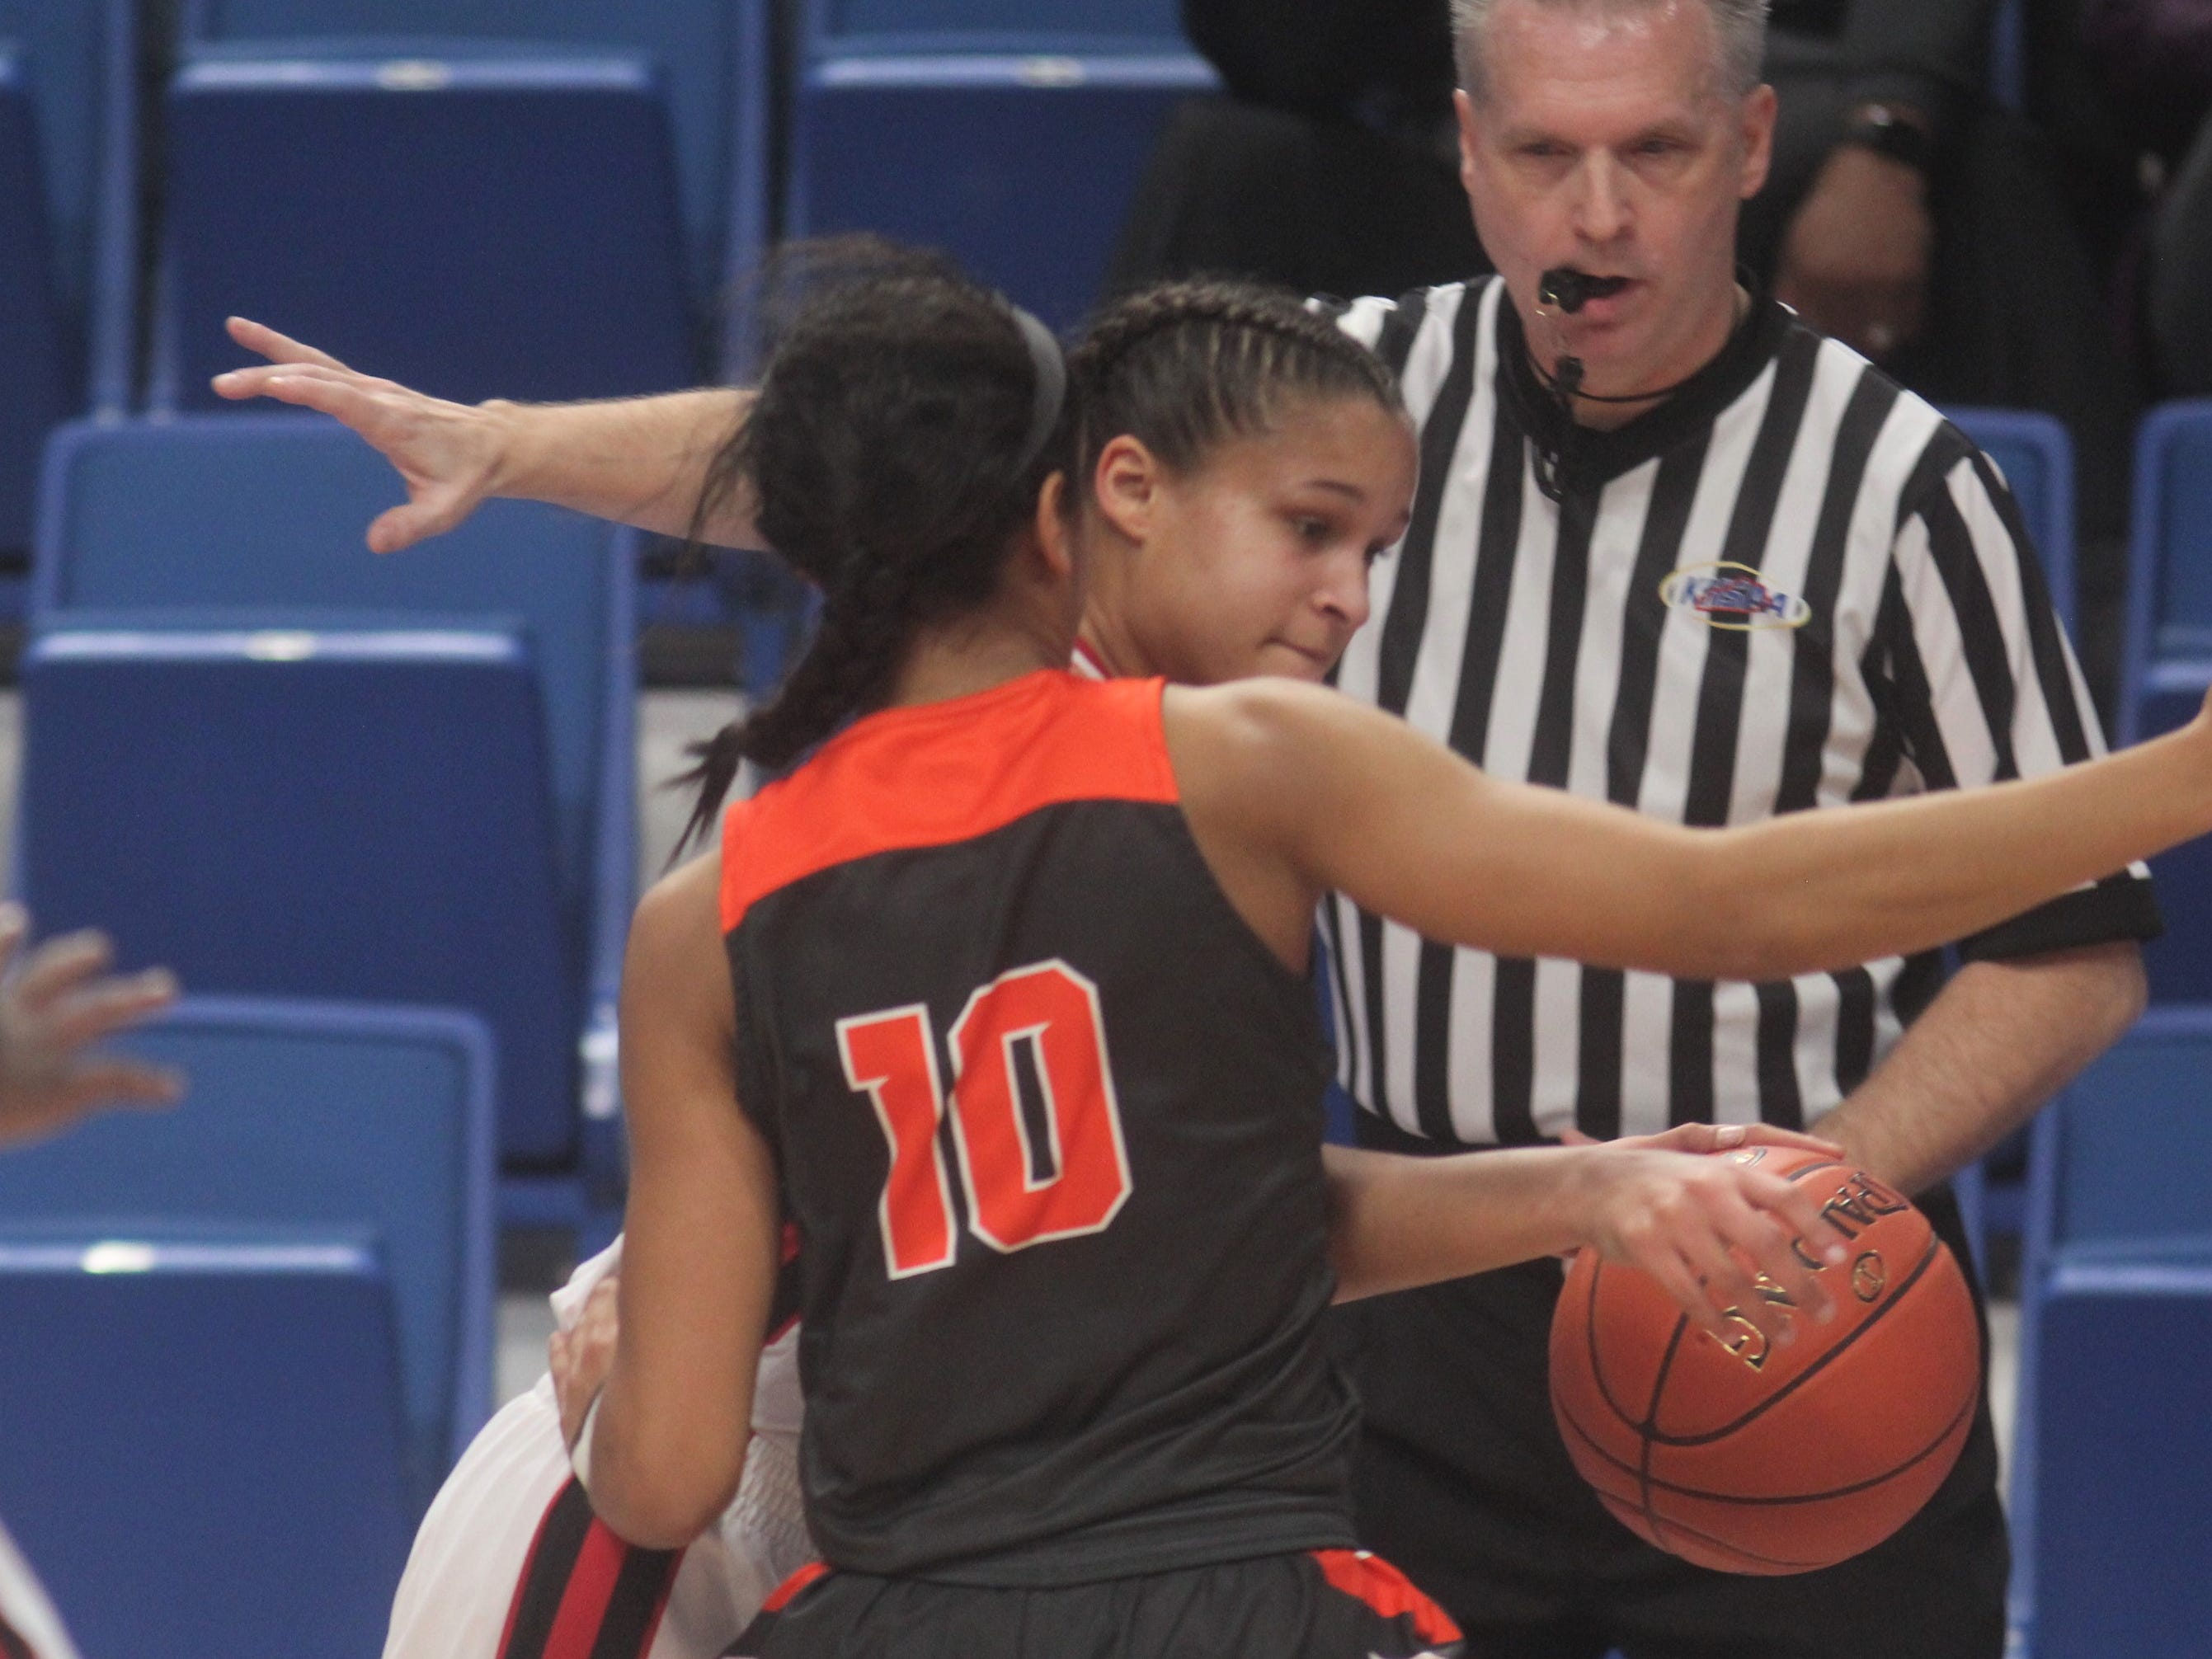 Ryle senior Juliet McGregor pressures her GRC opponent as Ryle defeated George Rogers Clark 64-51 in the state quarterfinals of the KHSAA Sweet 16 girls basketball tournament March 15, 2019 at Rupp Arena, Lexington KY.